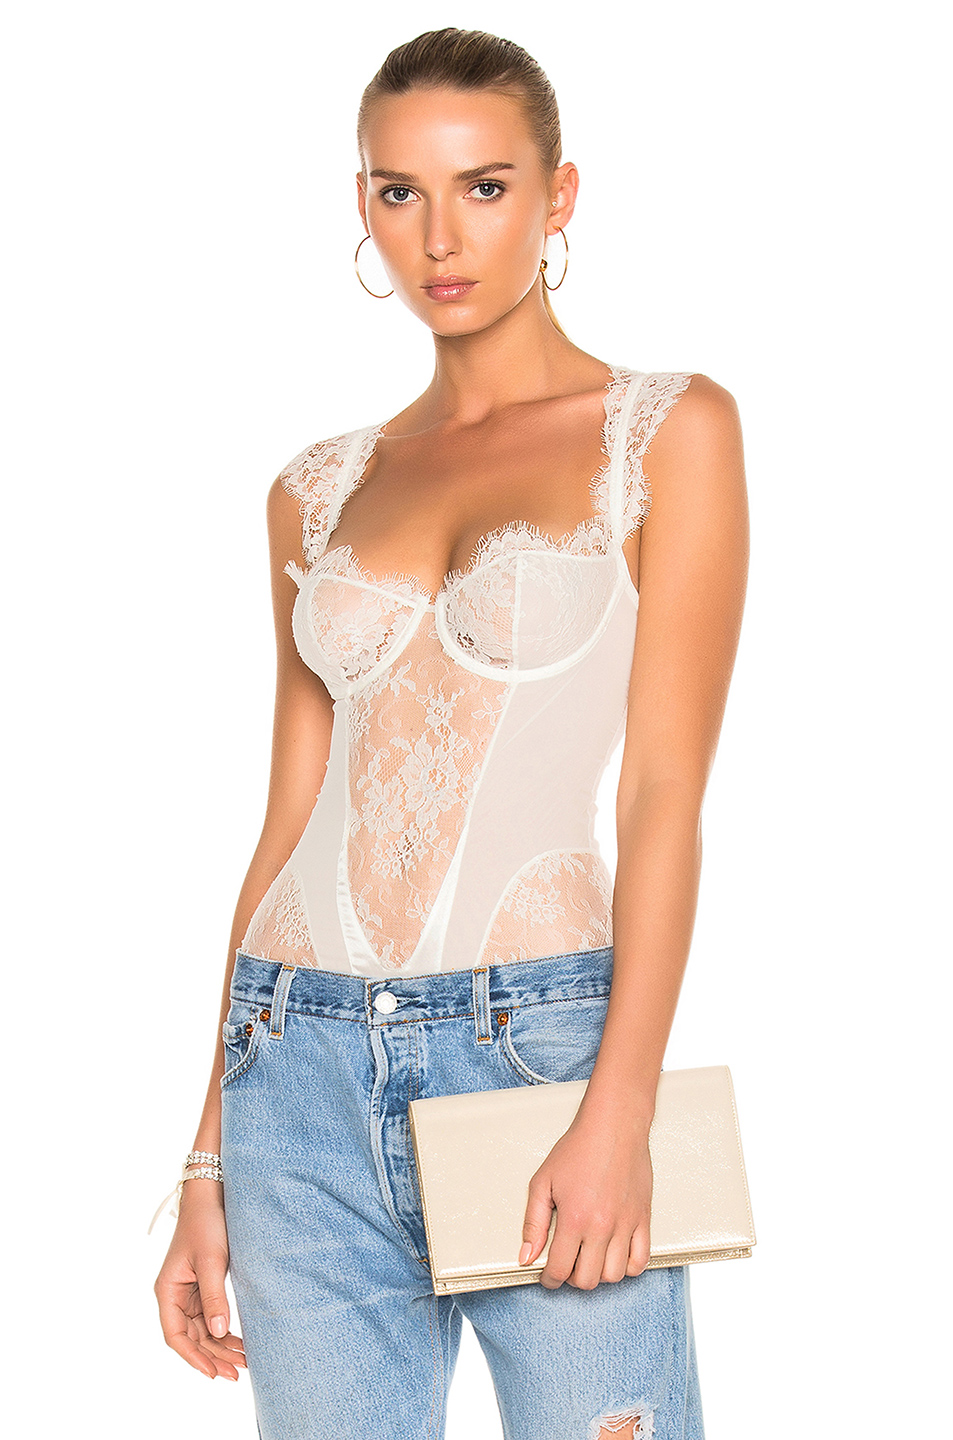 I.D. SARRIERI Bodysuit in White